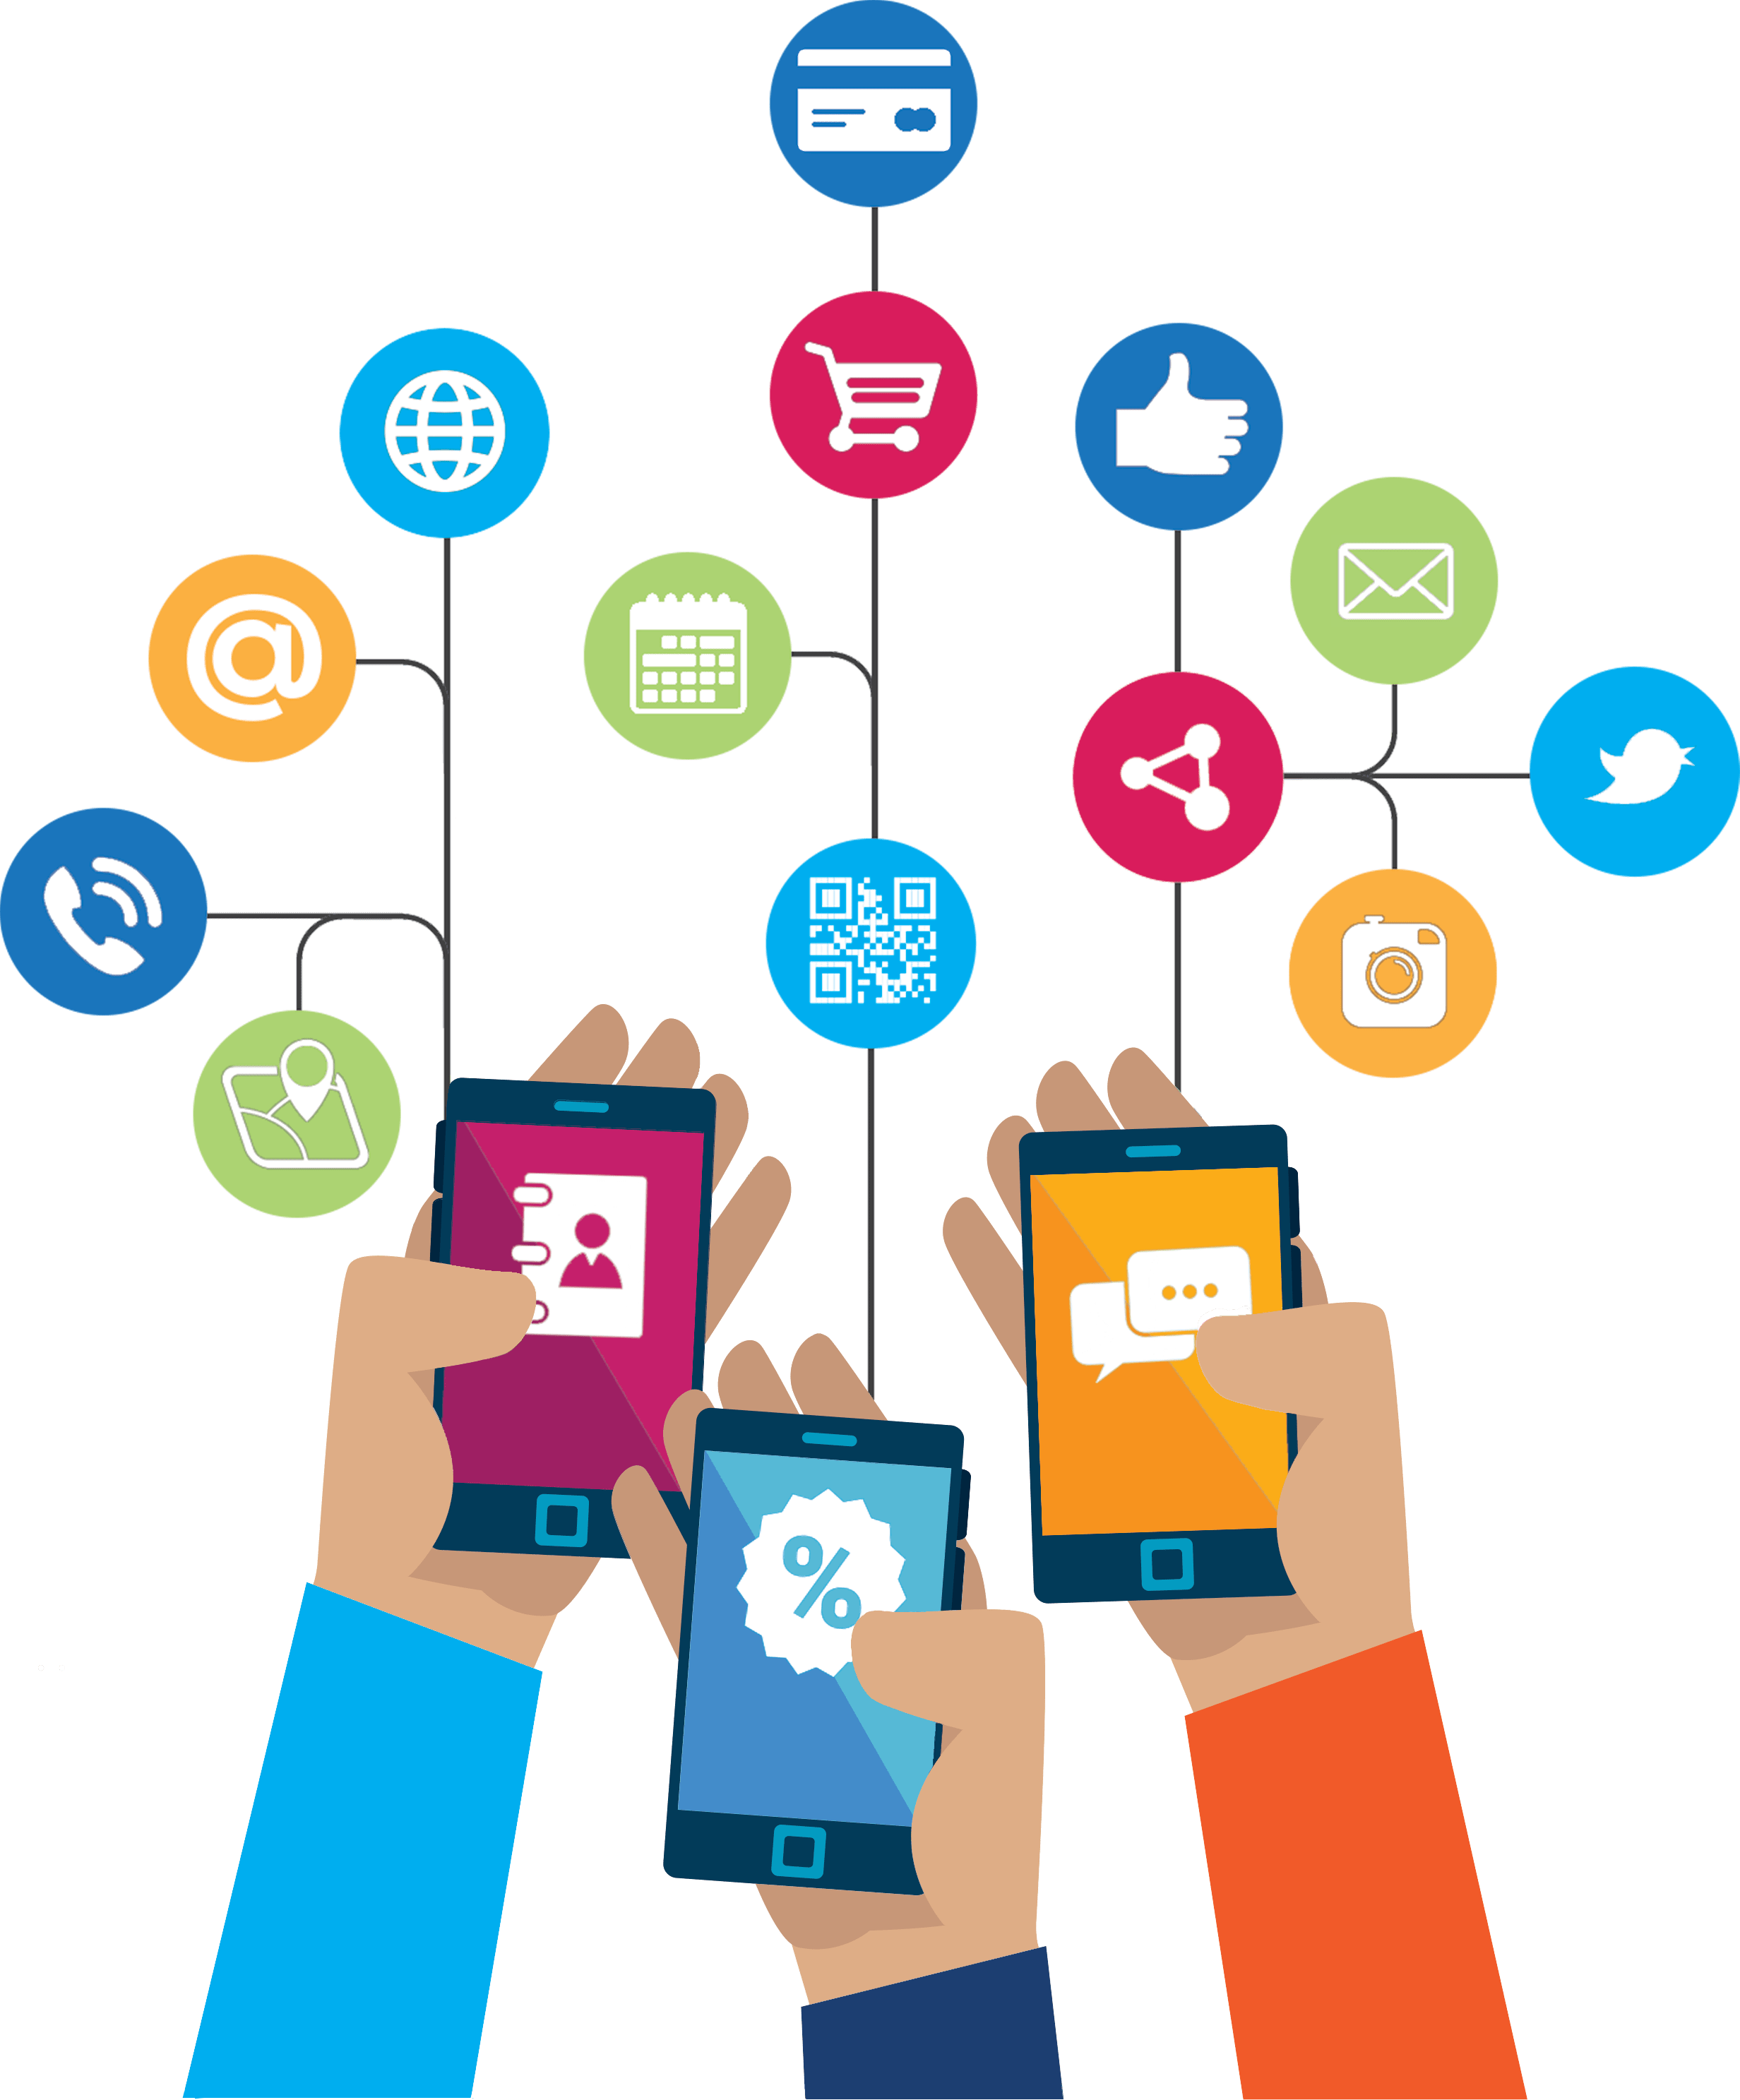 Hire Indian Programmers is the best Mobile app development